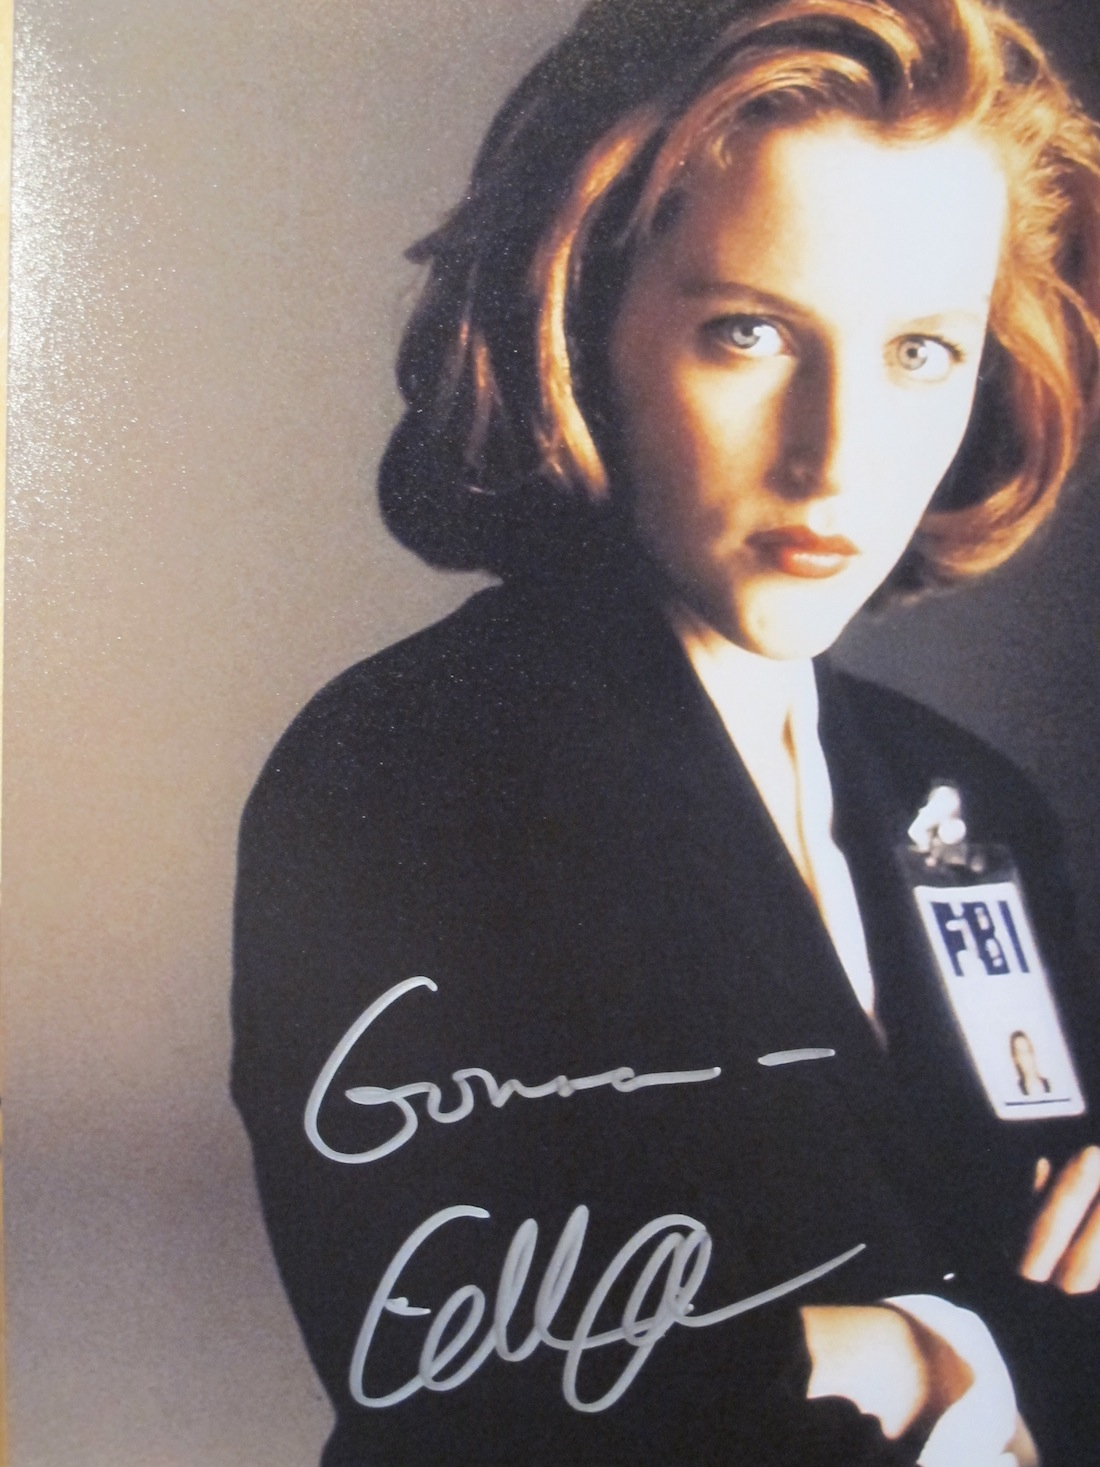 Gillian Anderson X Files